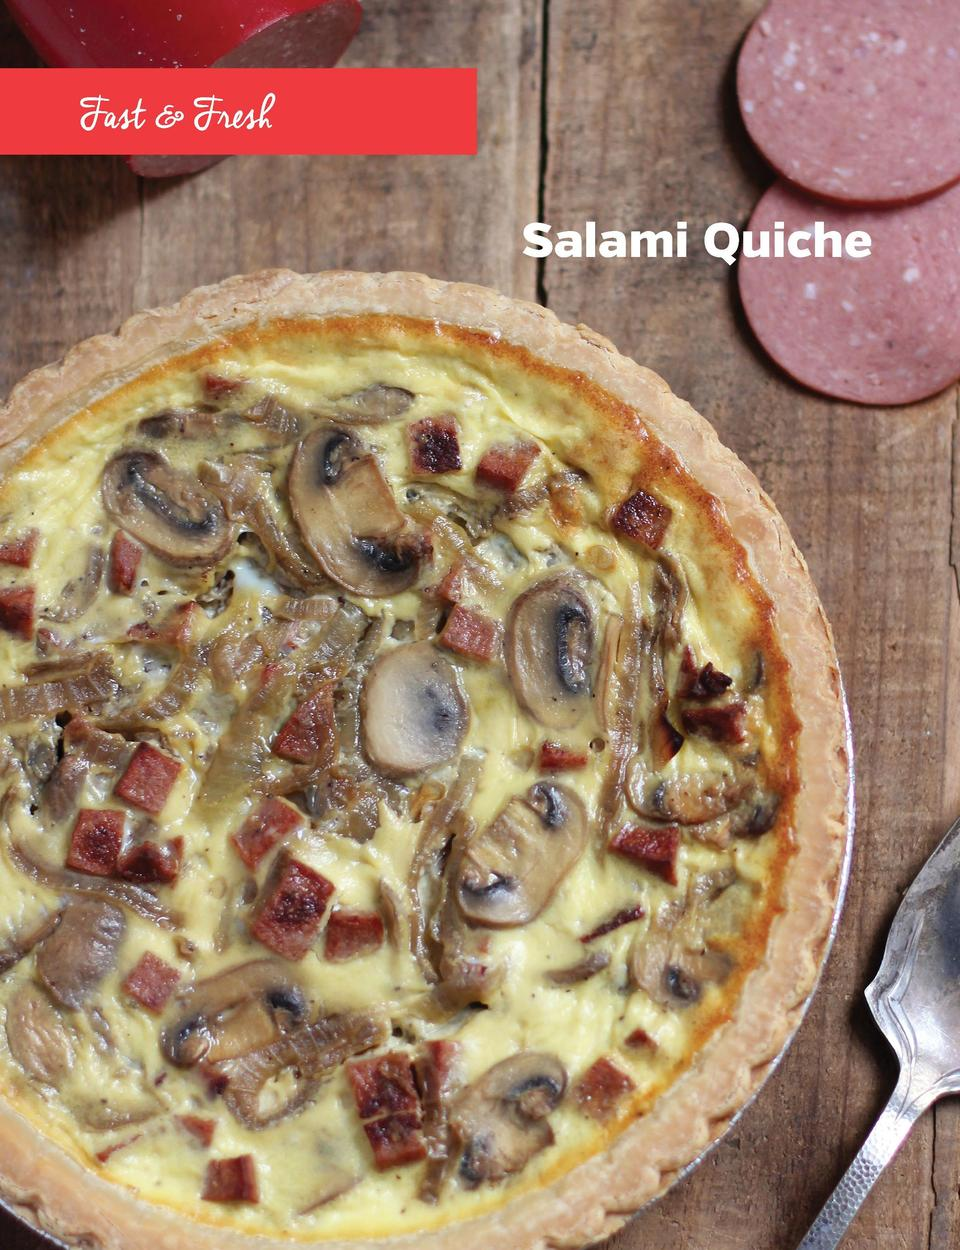 Sha r pe n You r A ppe tite     Fast   Fresh  Salami Quiche  Salami Quiche I once read that some people have a custom to ...